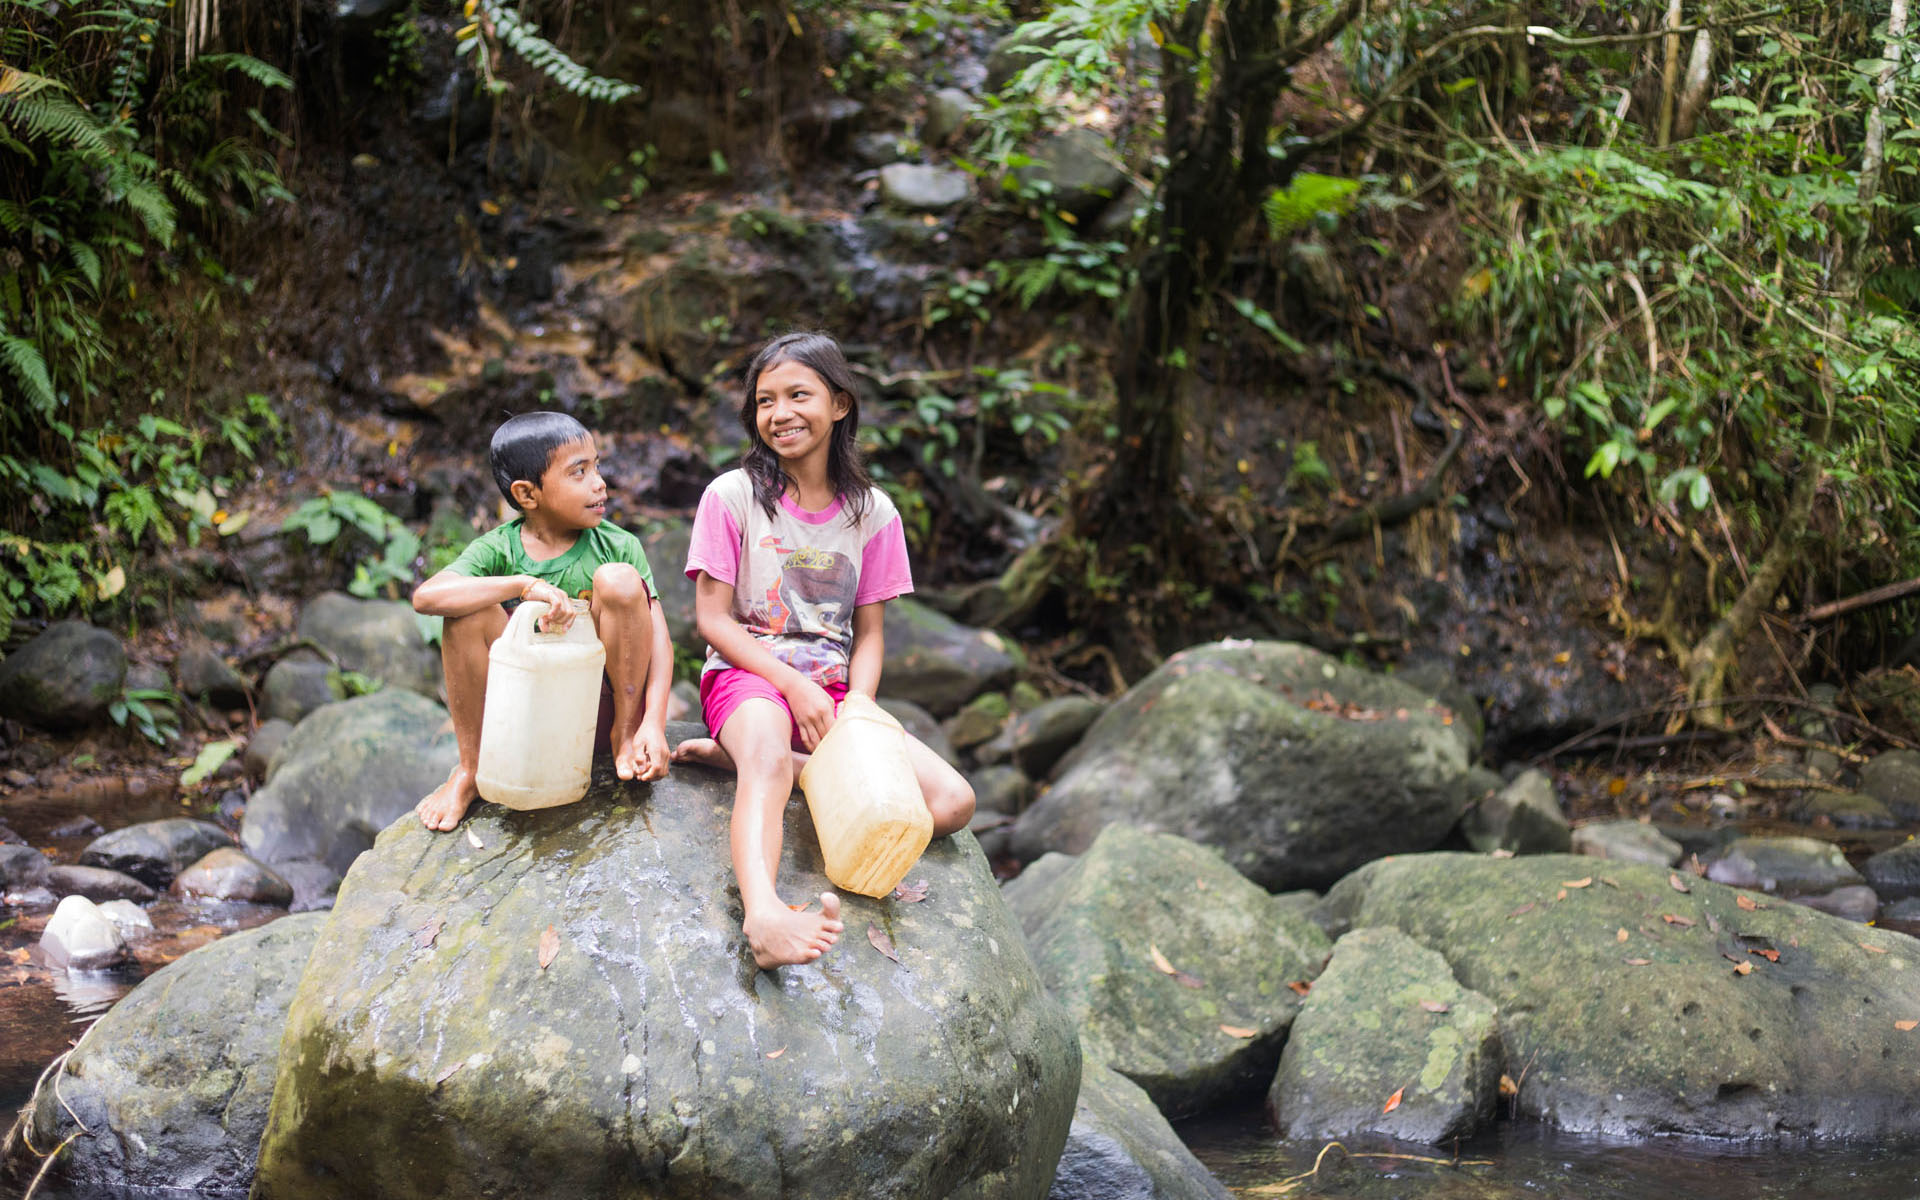 Stevi and Arnold Kusasu collect clean water for their family.